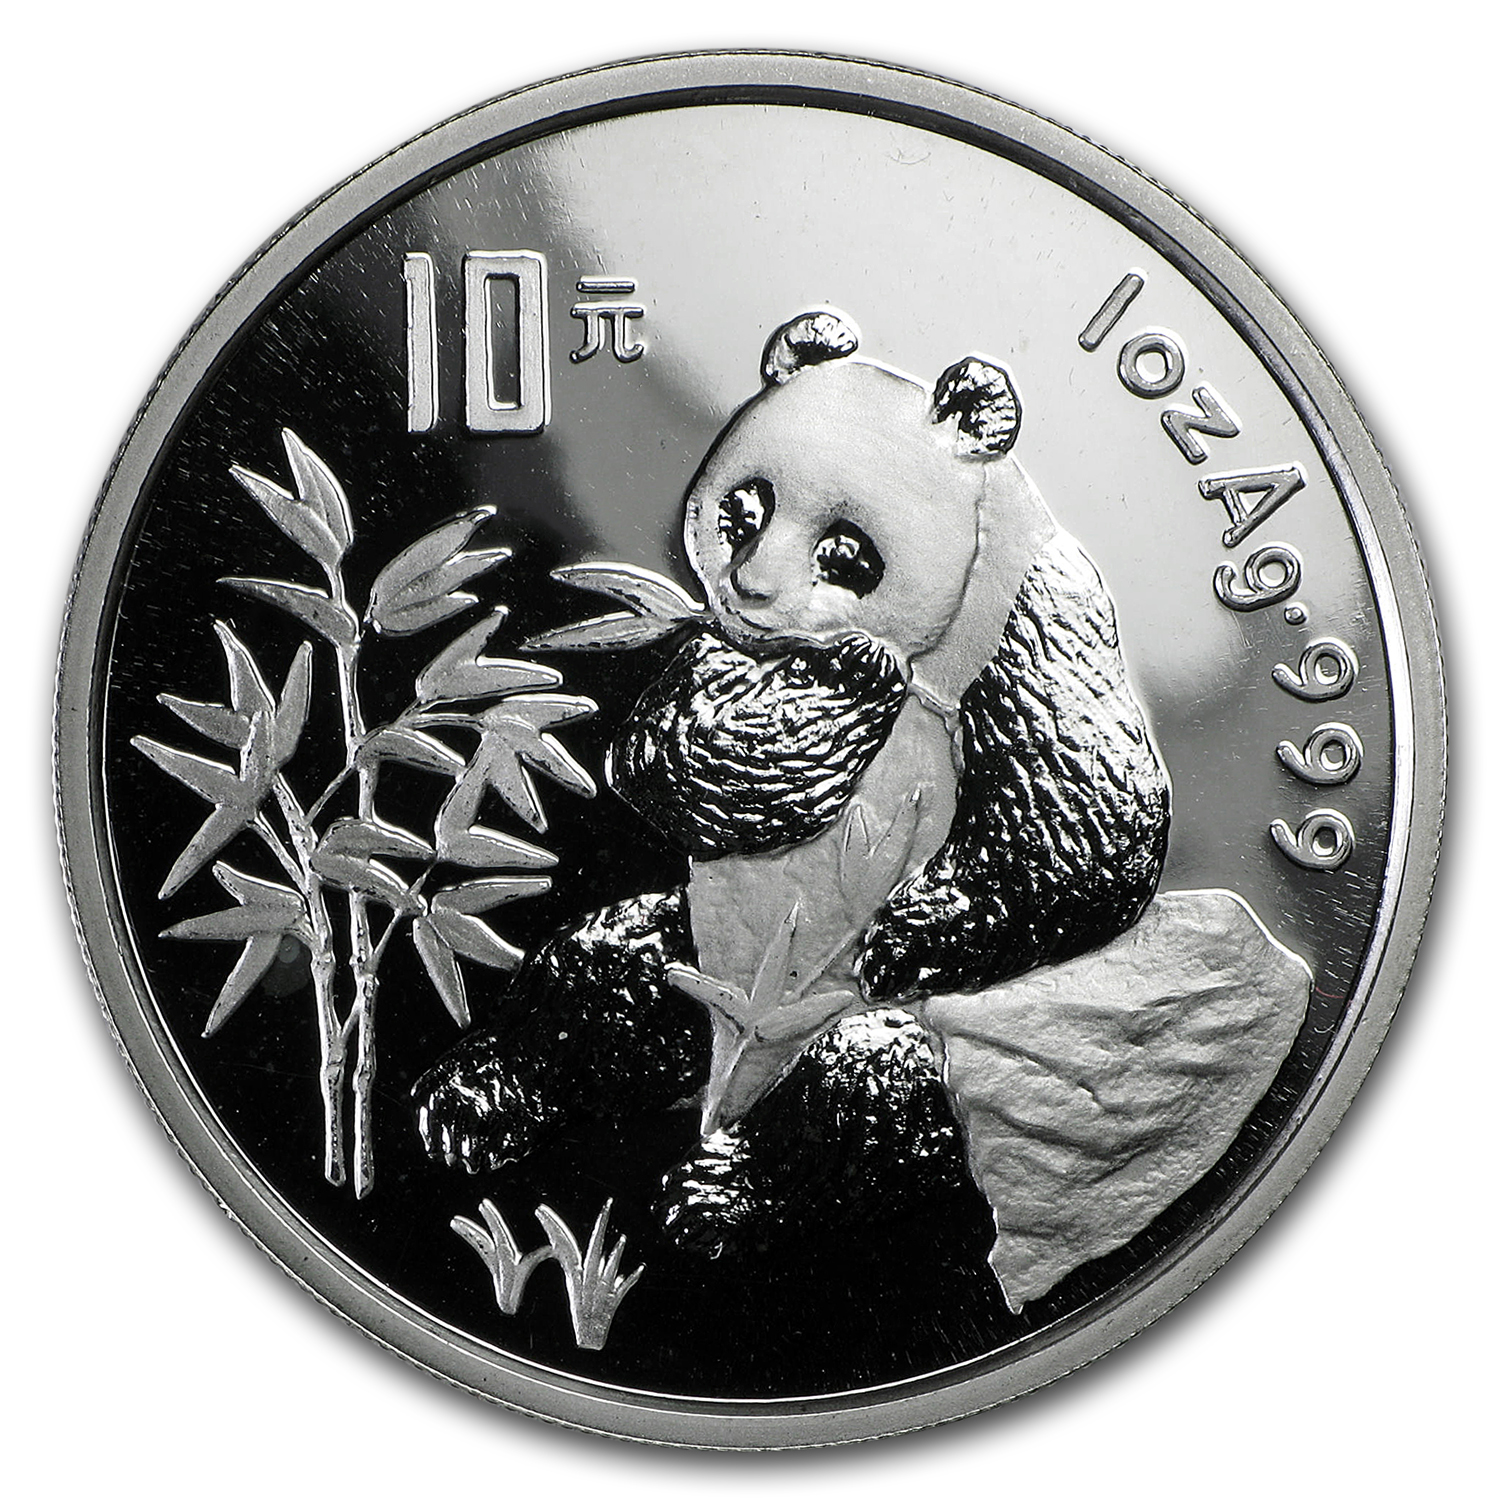 1996 1 oz Silver Chinese Panda Proof (w/Box & COA)